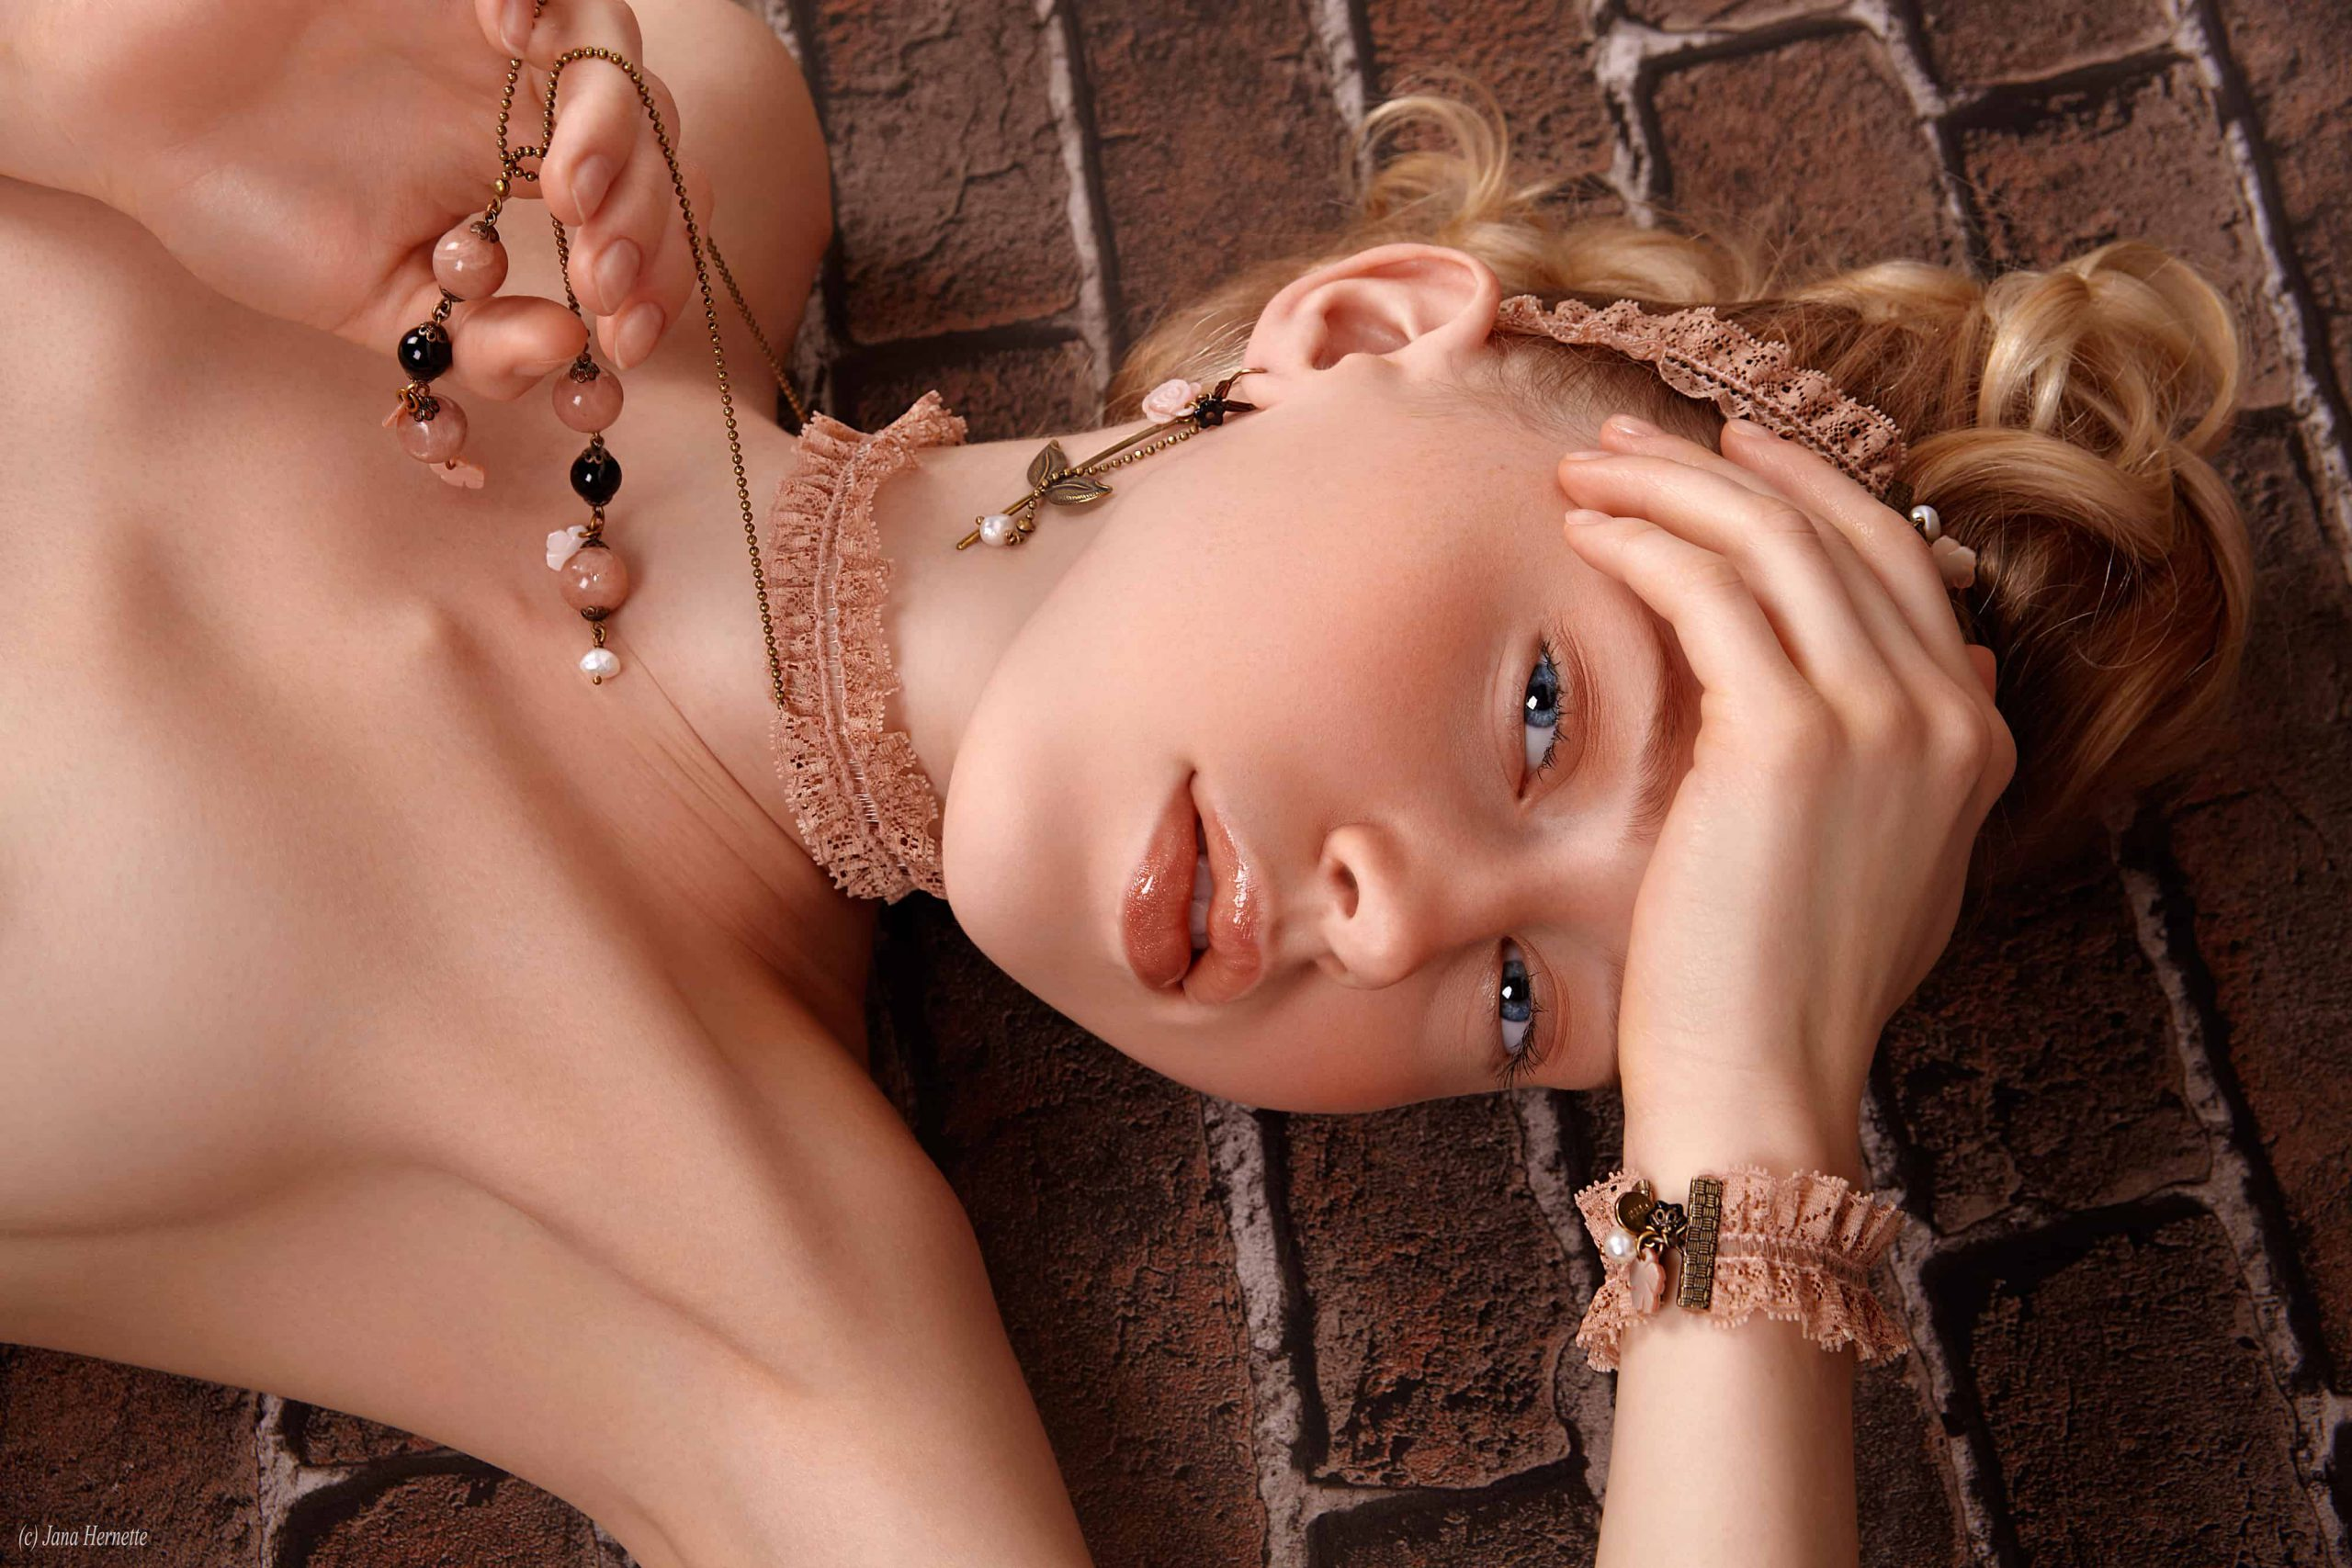 55 Collection JULIE SION JEWELRY Photographe Jana Hernette. Modèle Olesya Makeup Cindy Galhac scaled